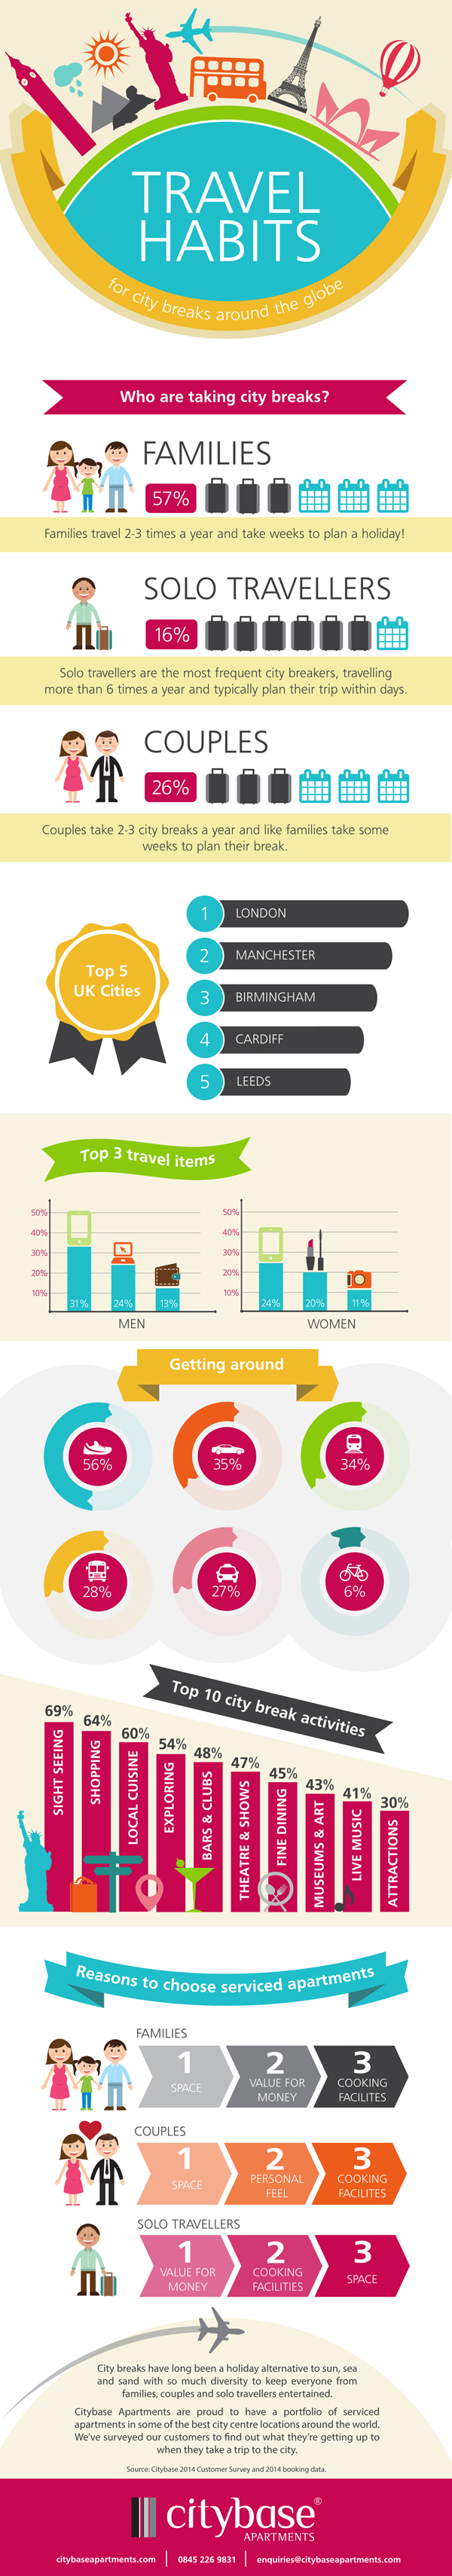 City Travel Habits Infrographic by Citybase Apartments